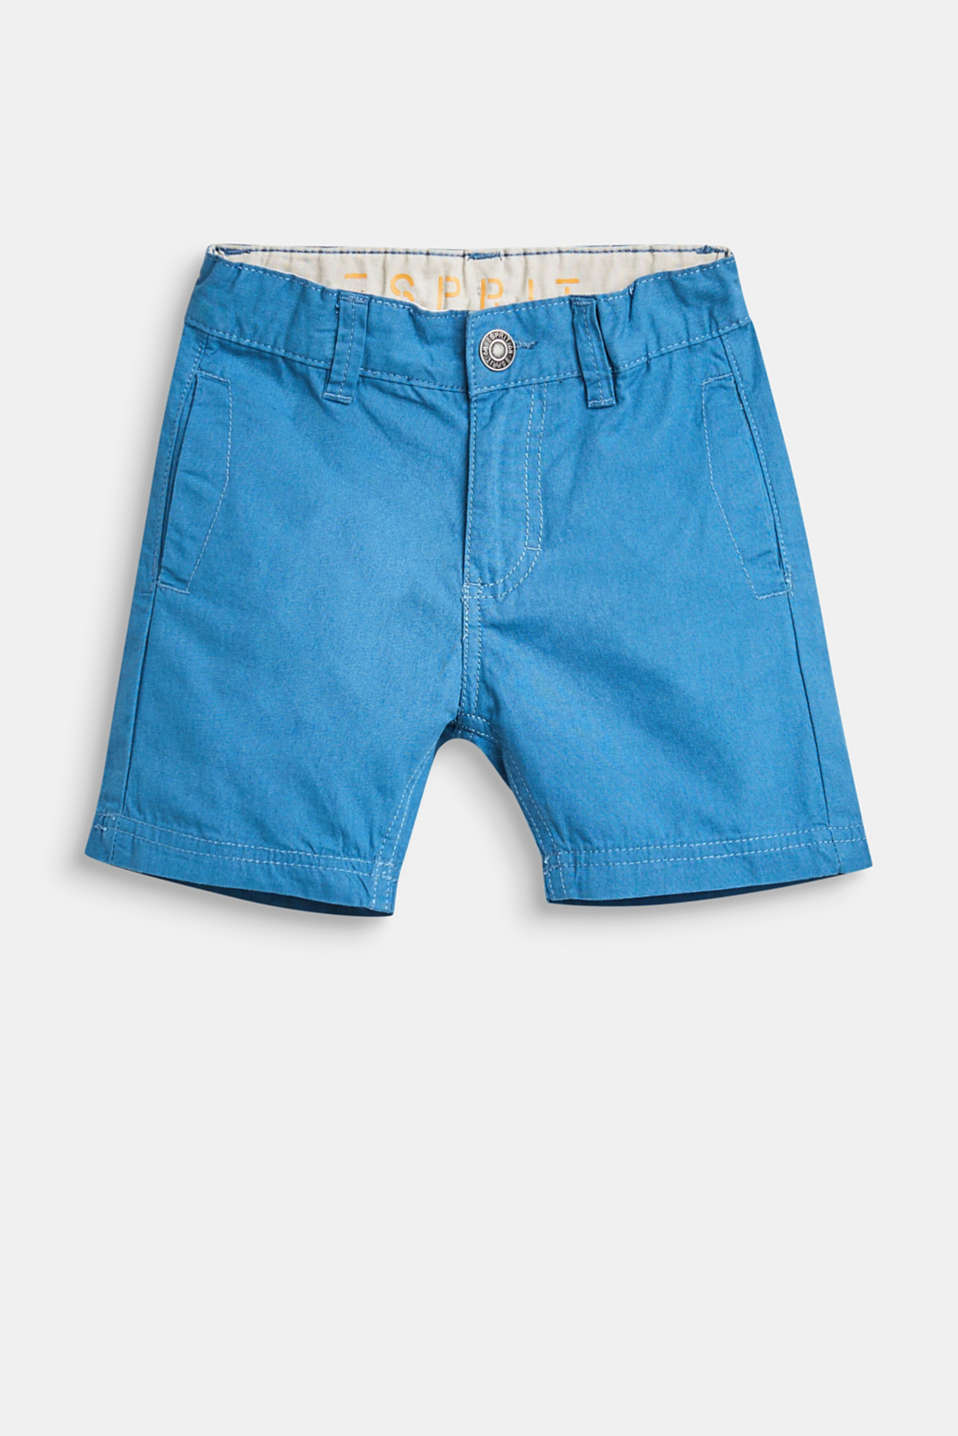 Esprit - Chinos shorts with an adjustable waistband, 100% cotton